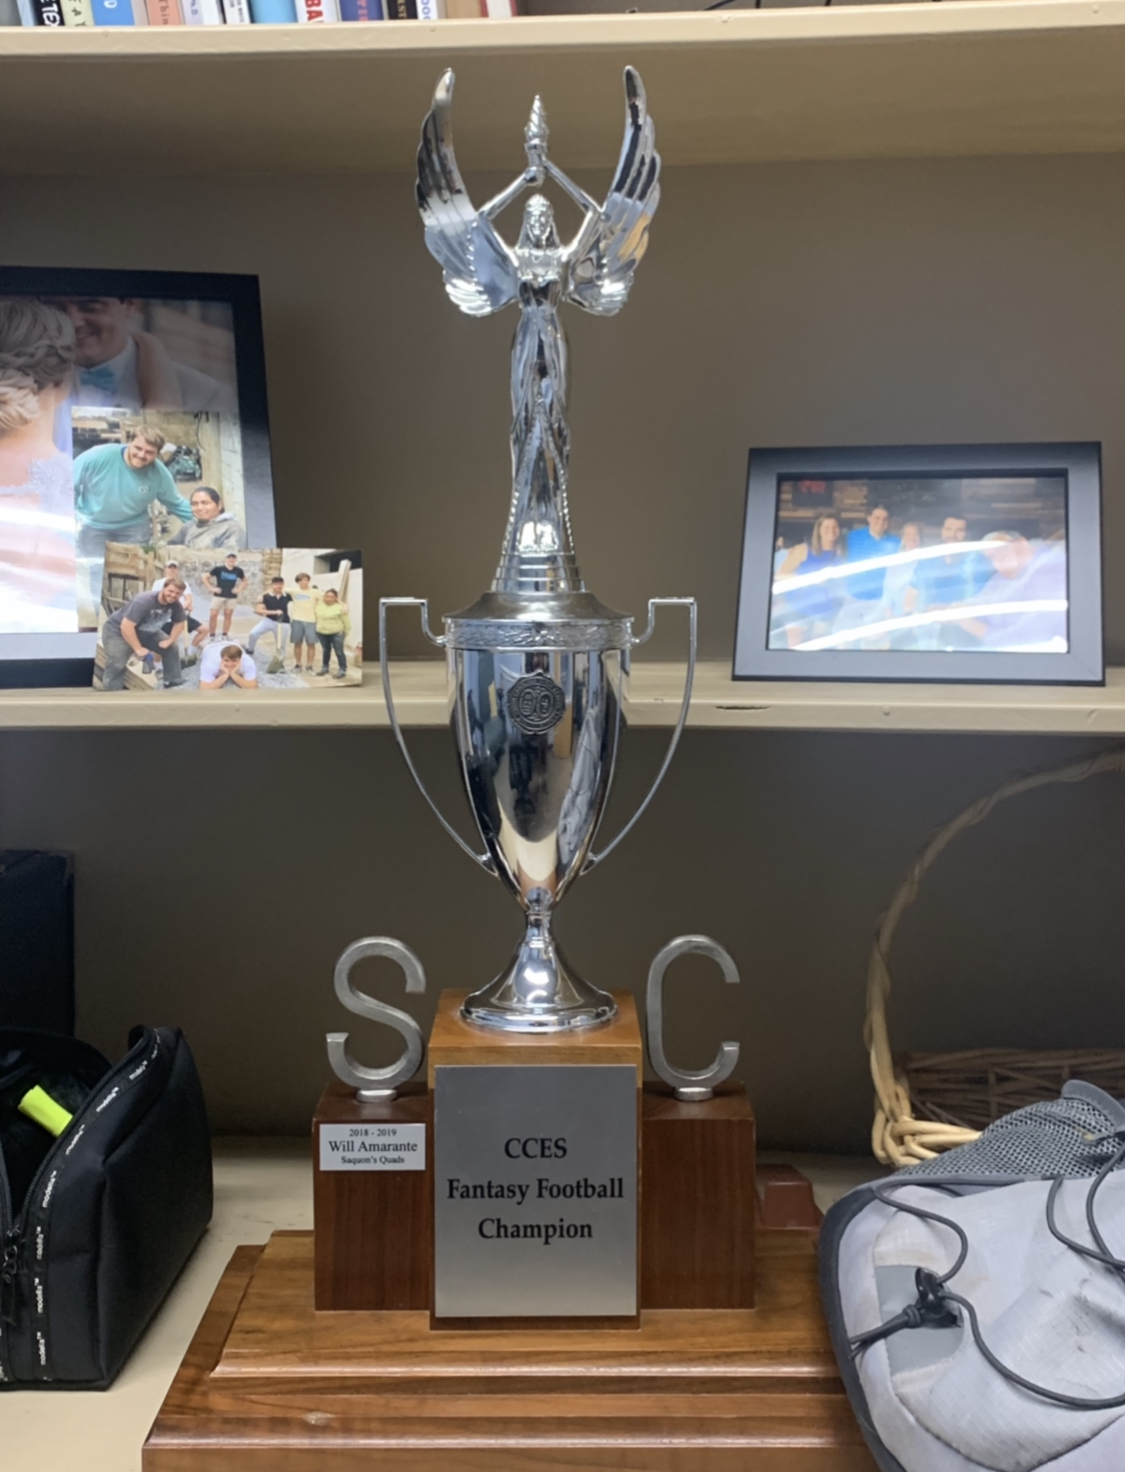 CCES Faculty Fantasy Football: The Race For The Trophy